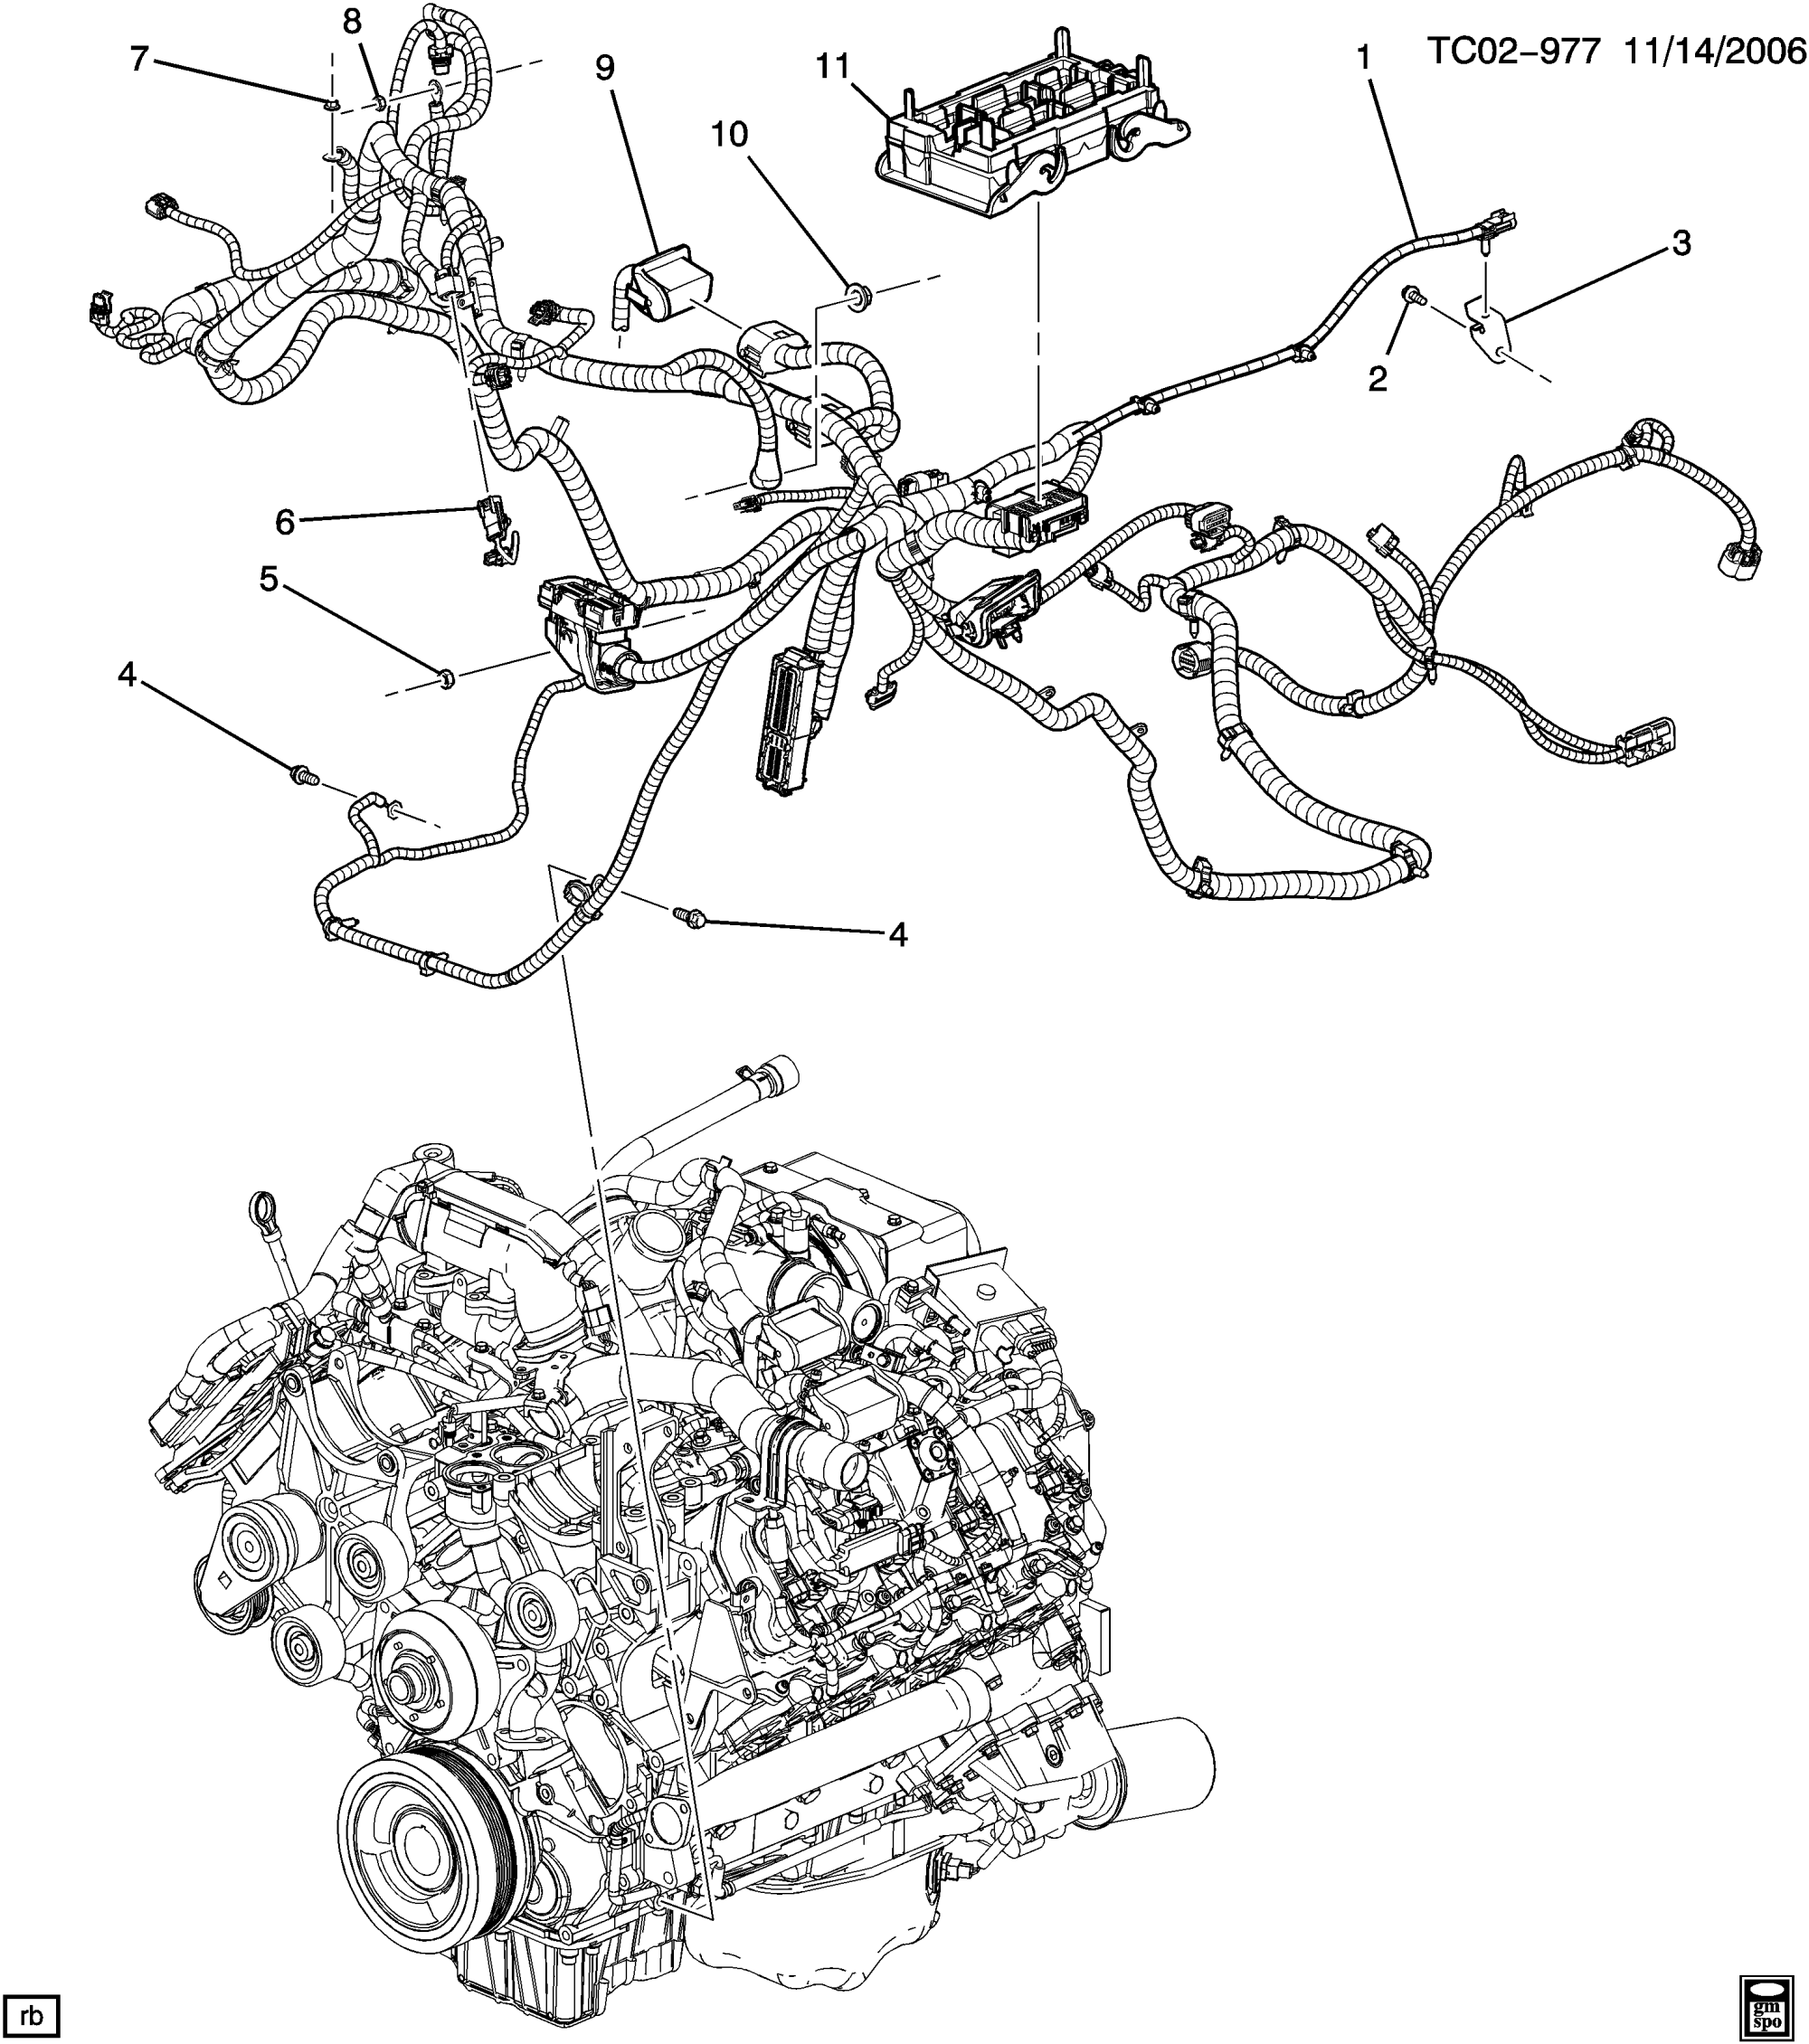 hight resolution of 6 6 duramax engine diagram wiring diagrams the duramax engine diagram f o source gm 6 6l